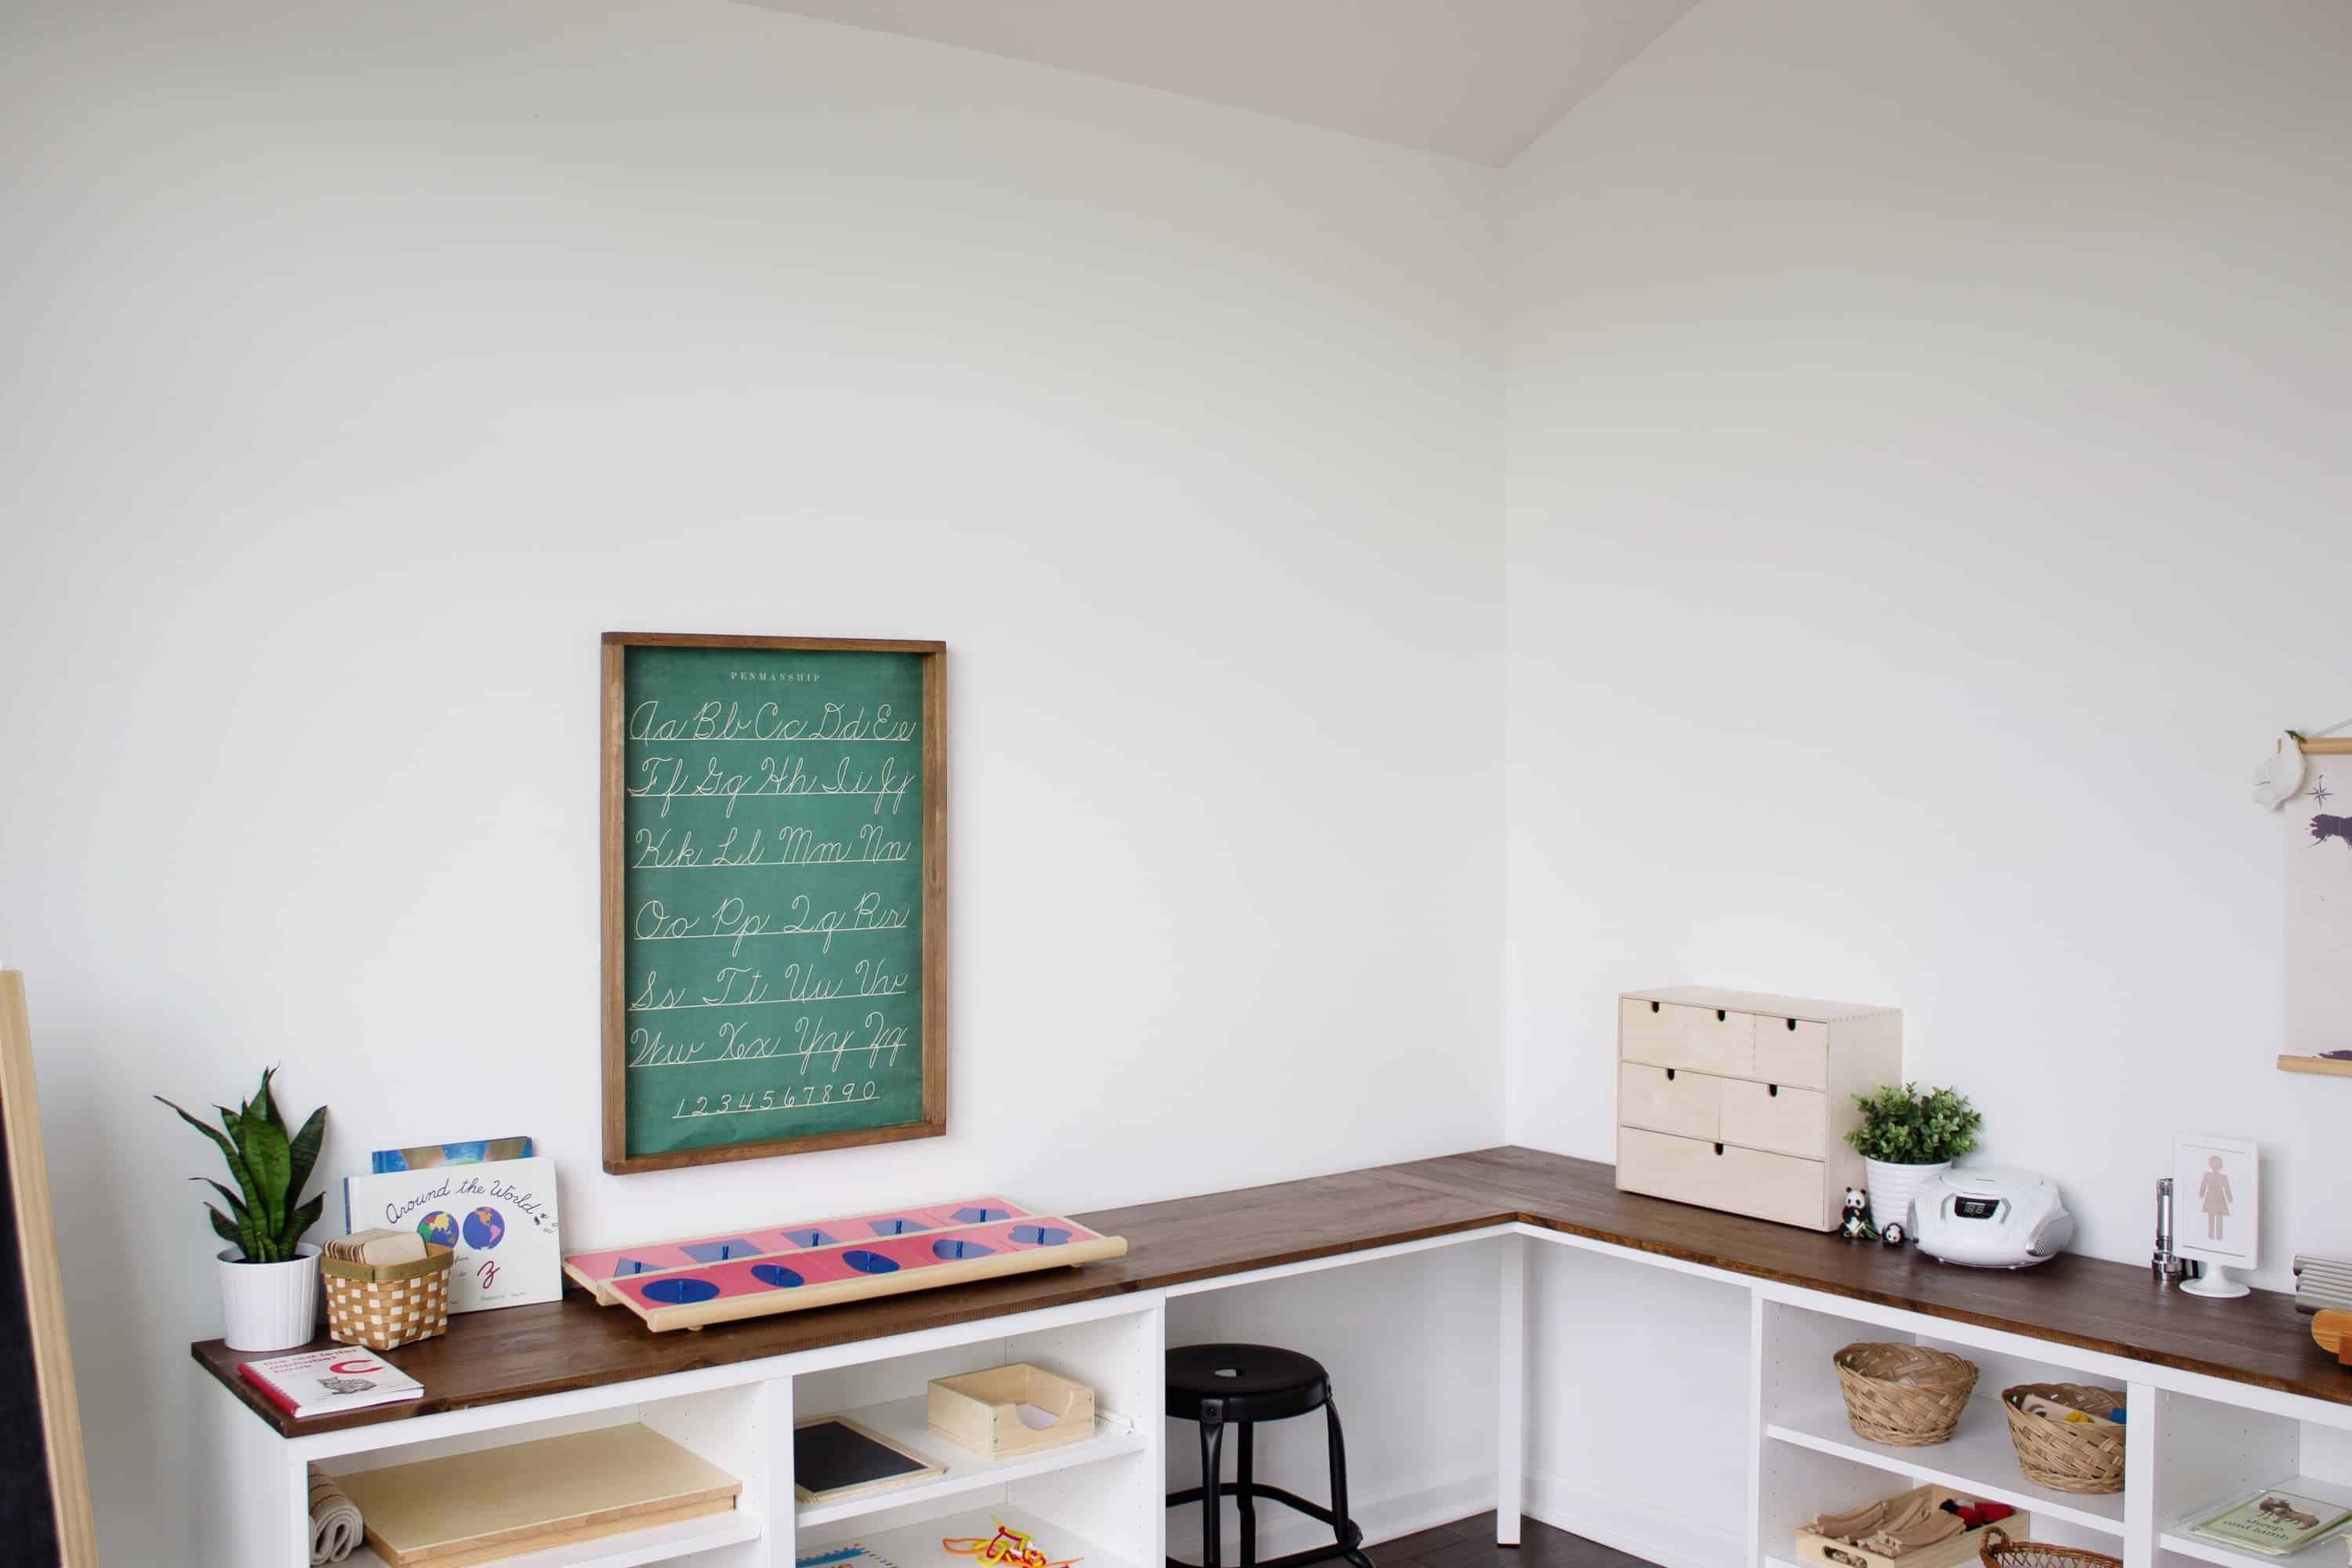 Montessori homeschooling room with corner desk